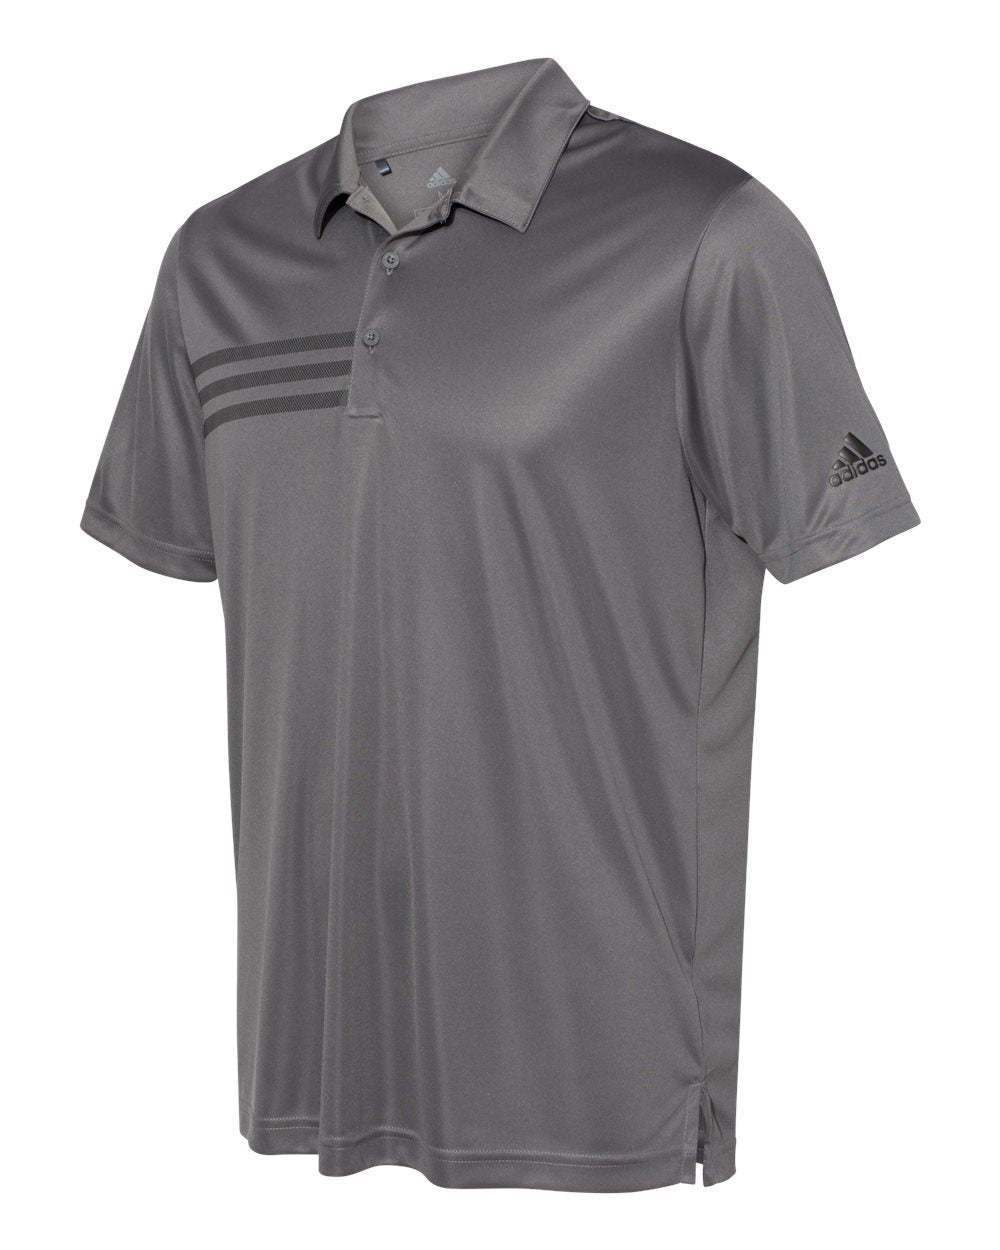 ADIDAS MEN'S 3 STRIPES CHEST POLO